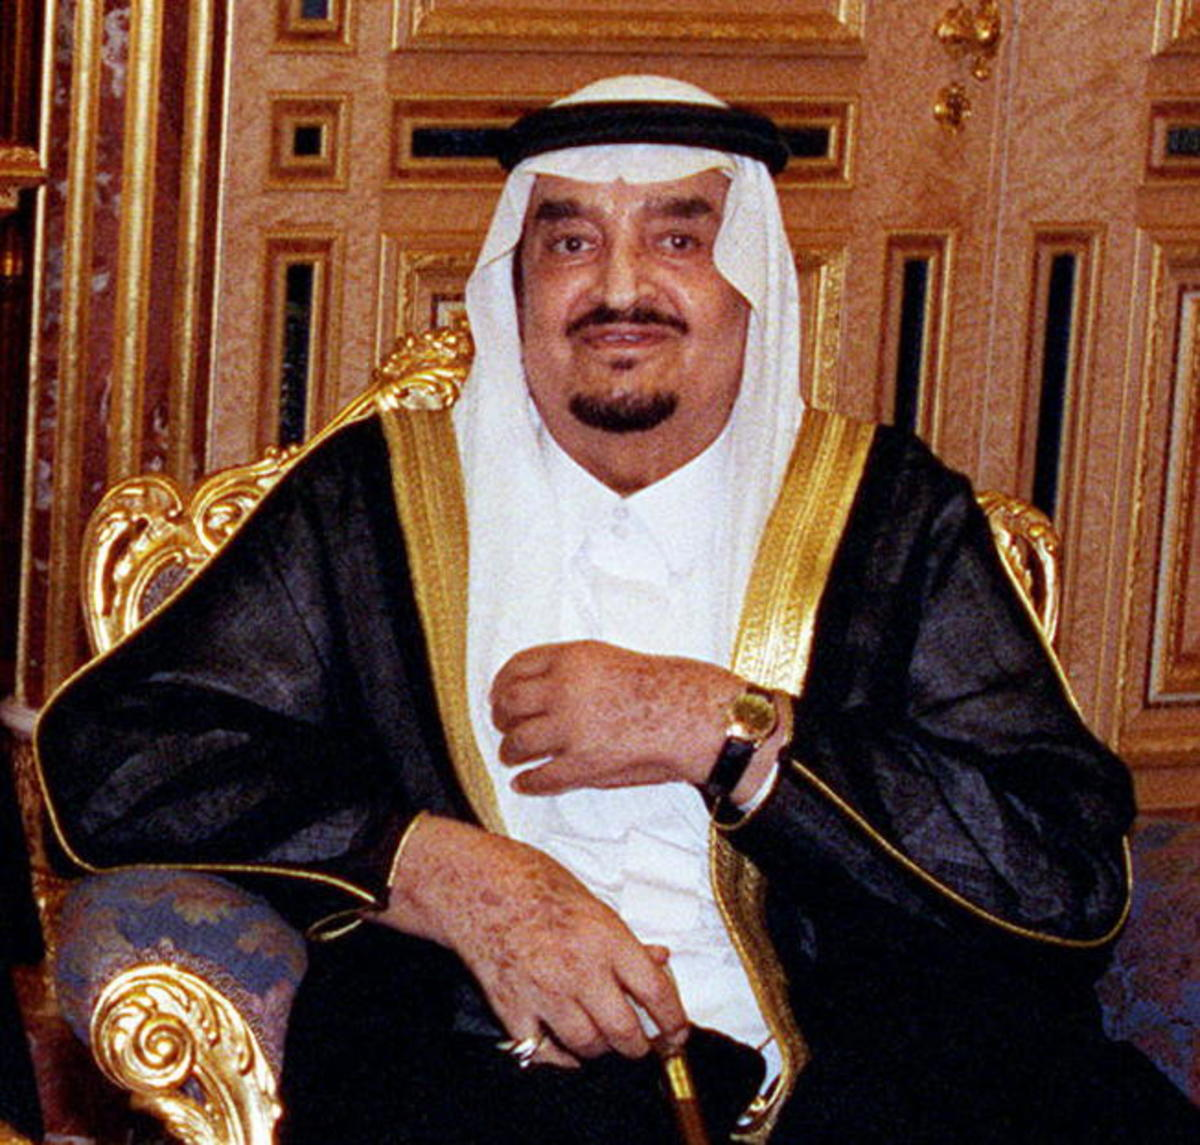 Fahd bin Abdulaziz Al Saud: born 16 March 1921 died 1 August 2005 was from 1982 to 2005 the King of Saudi Arabia.